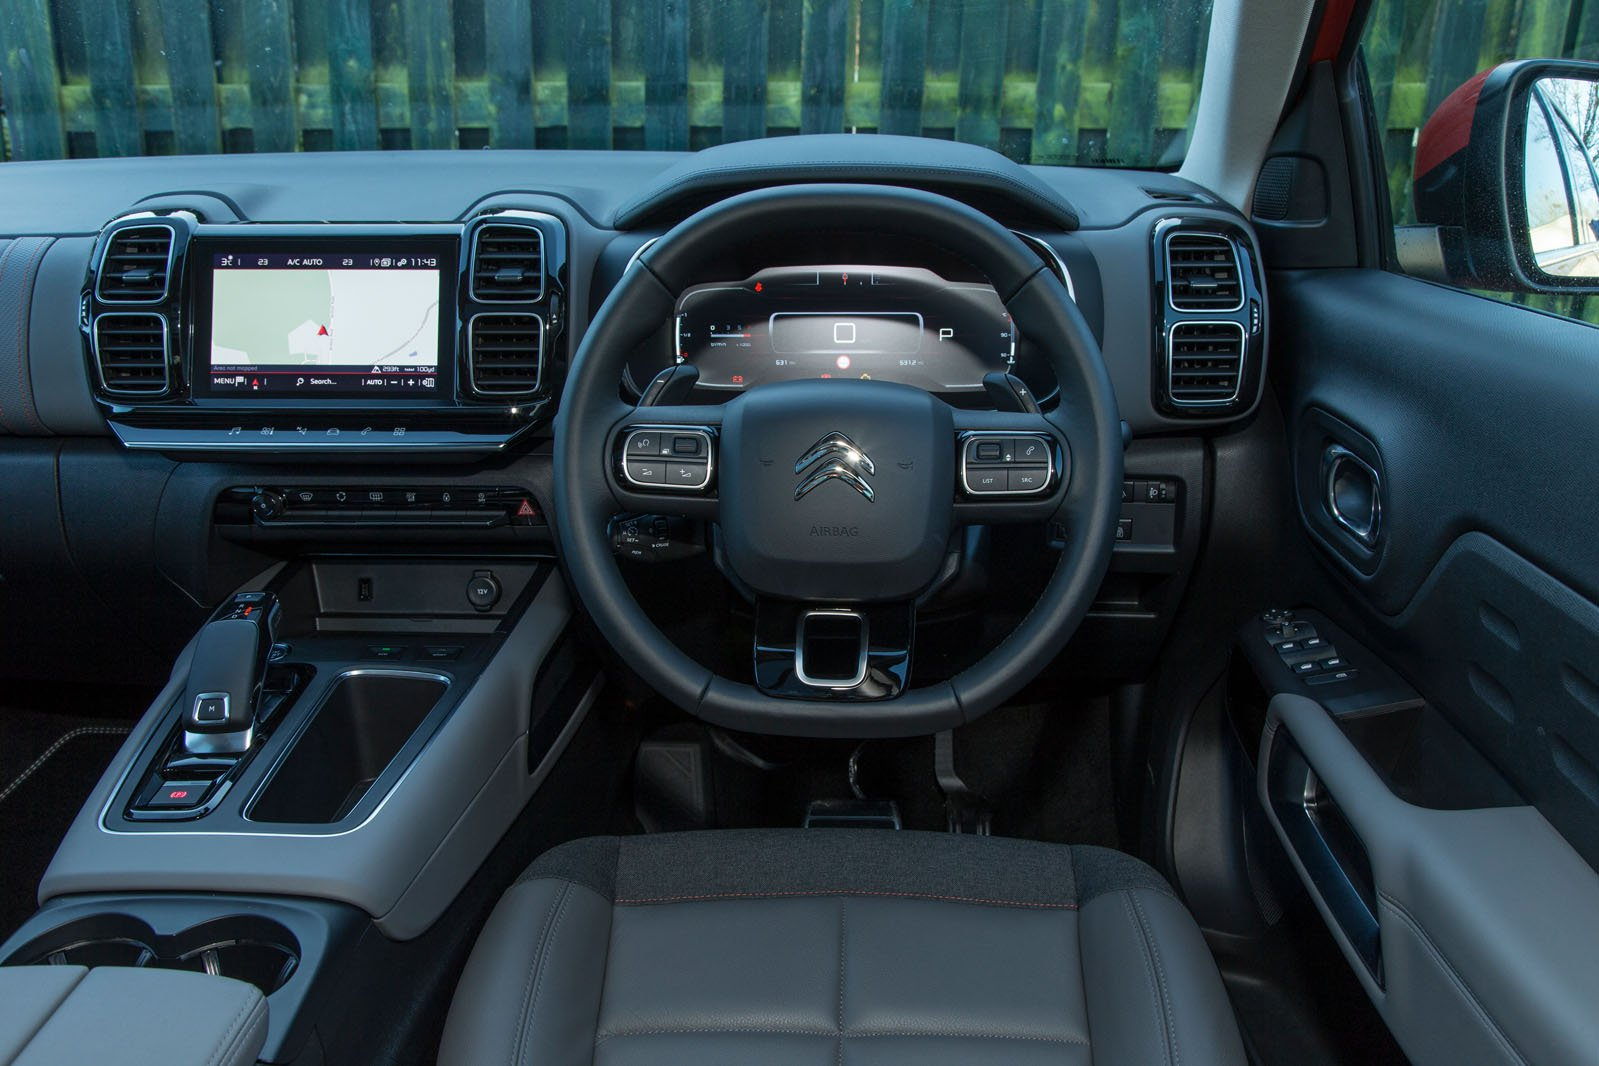 Citroën C5 Aircross Interior, Sat Nav, Dashboard | What Car?